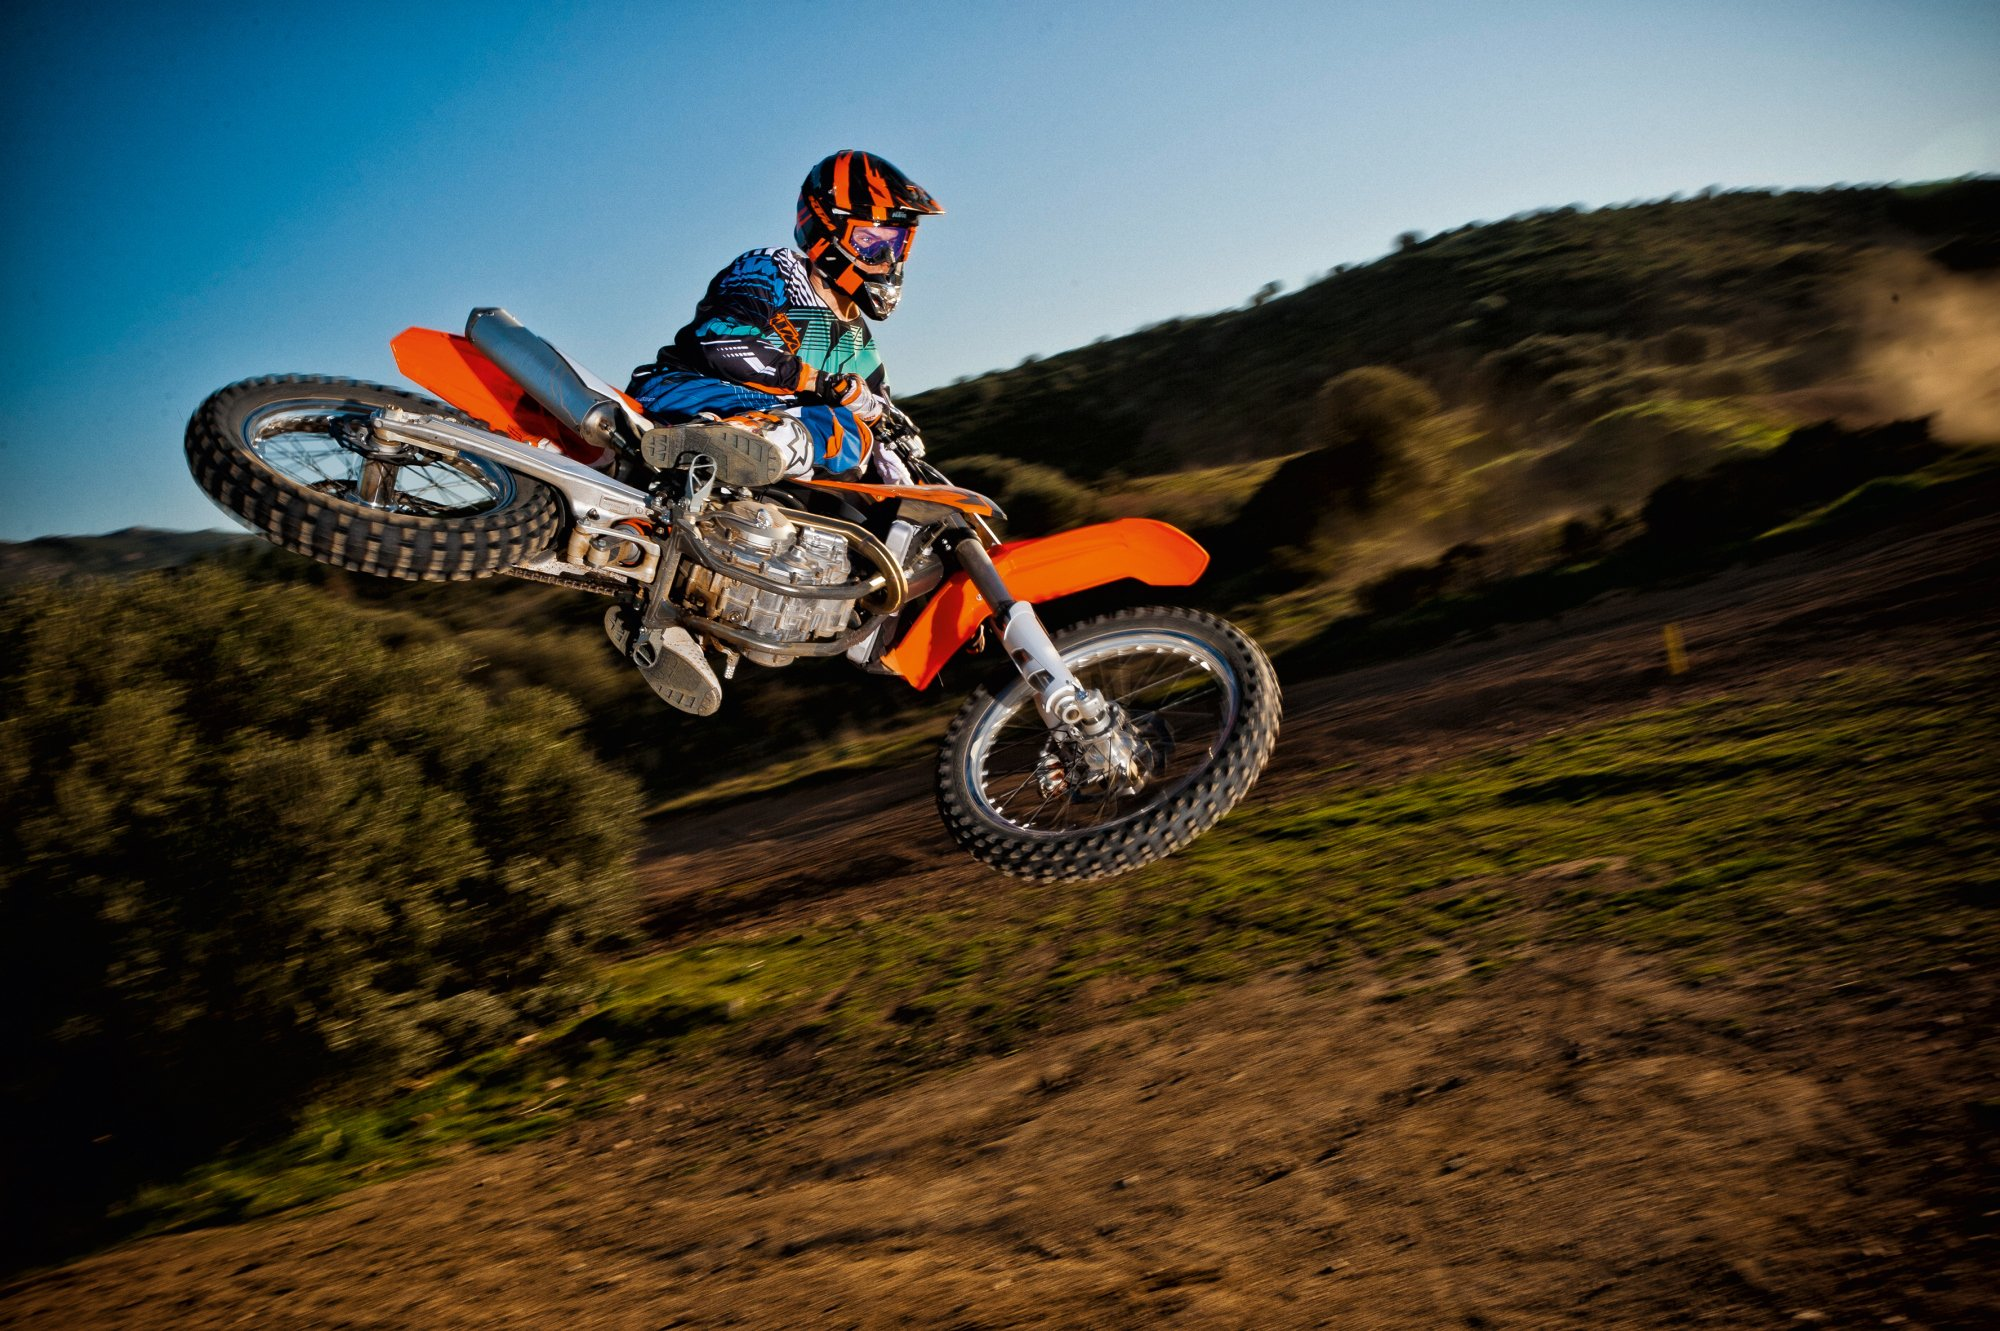 KTM 450 Sx Motocross Wallpaper Desktop 7962 Wallpaper 2000x1331